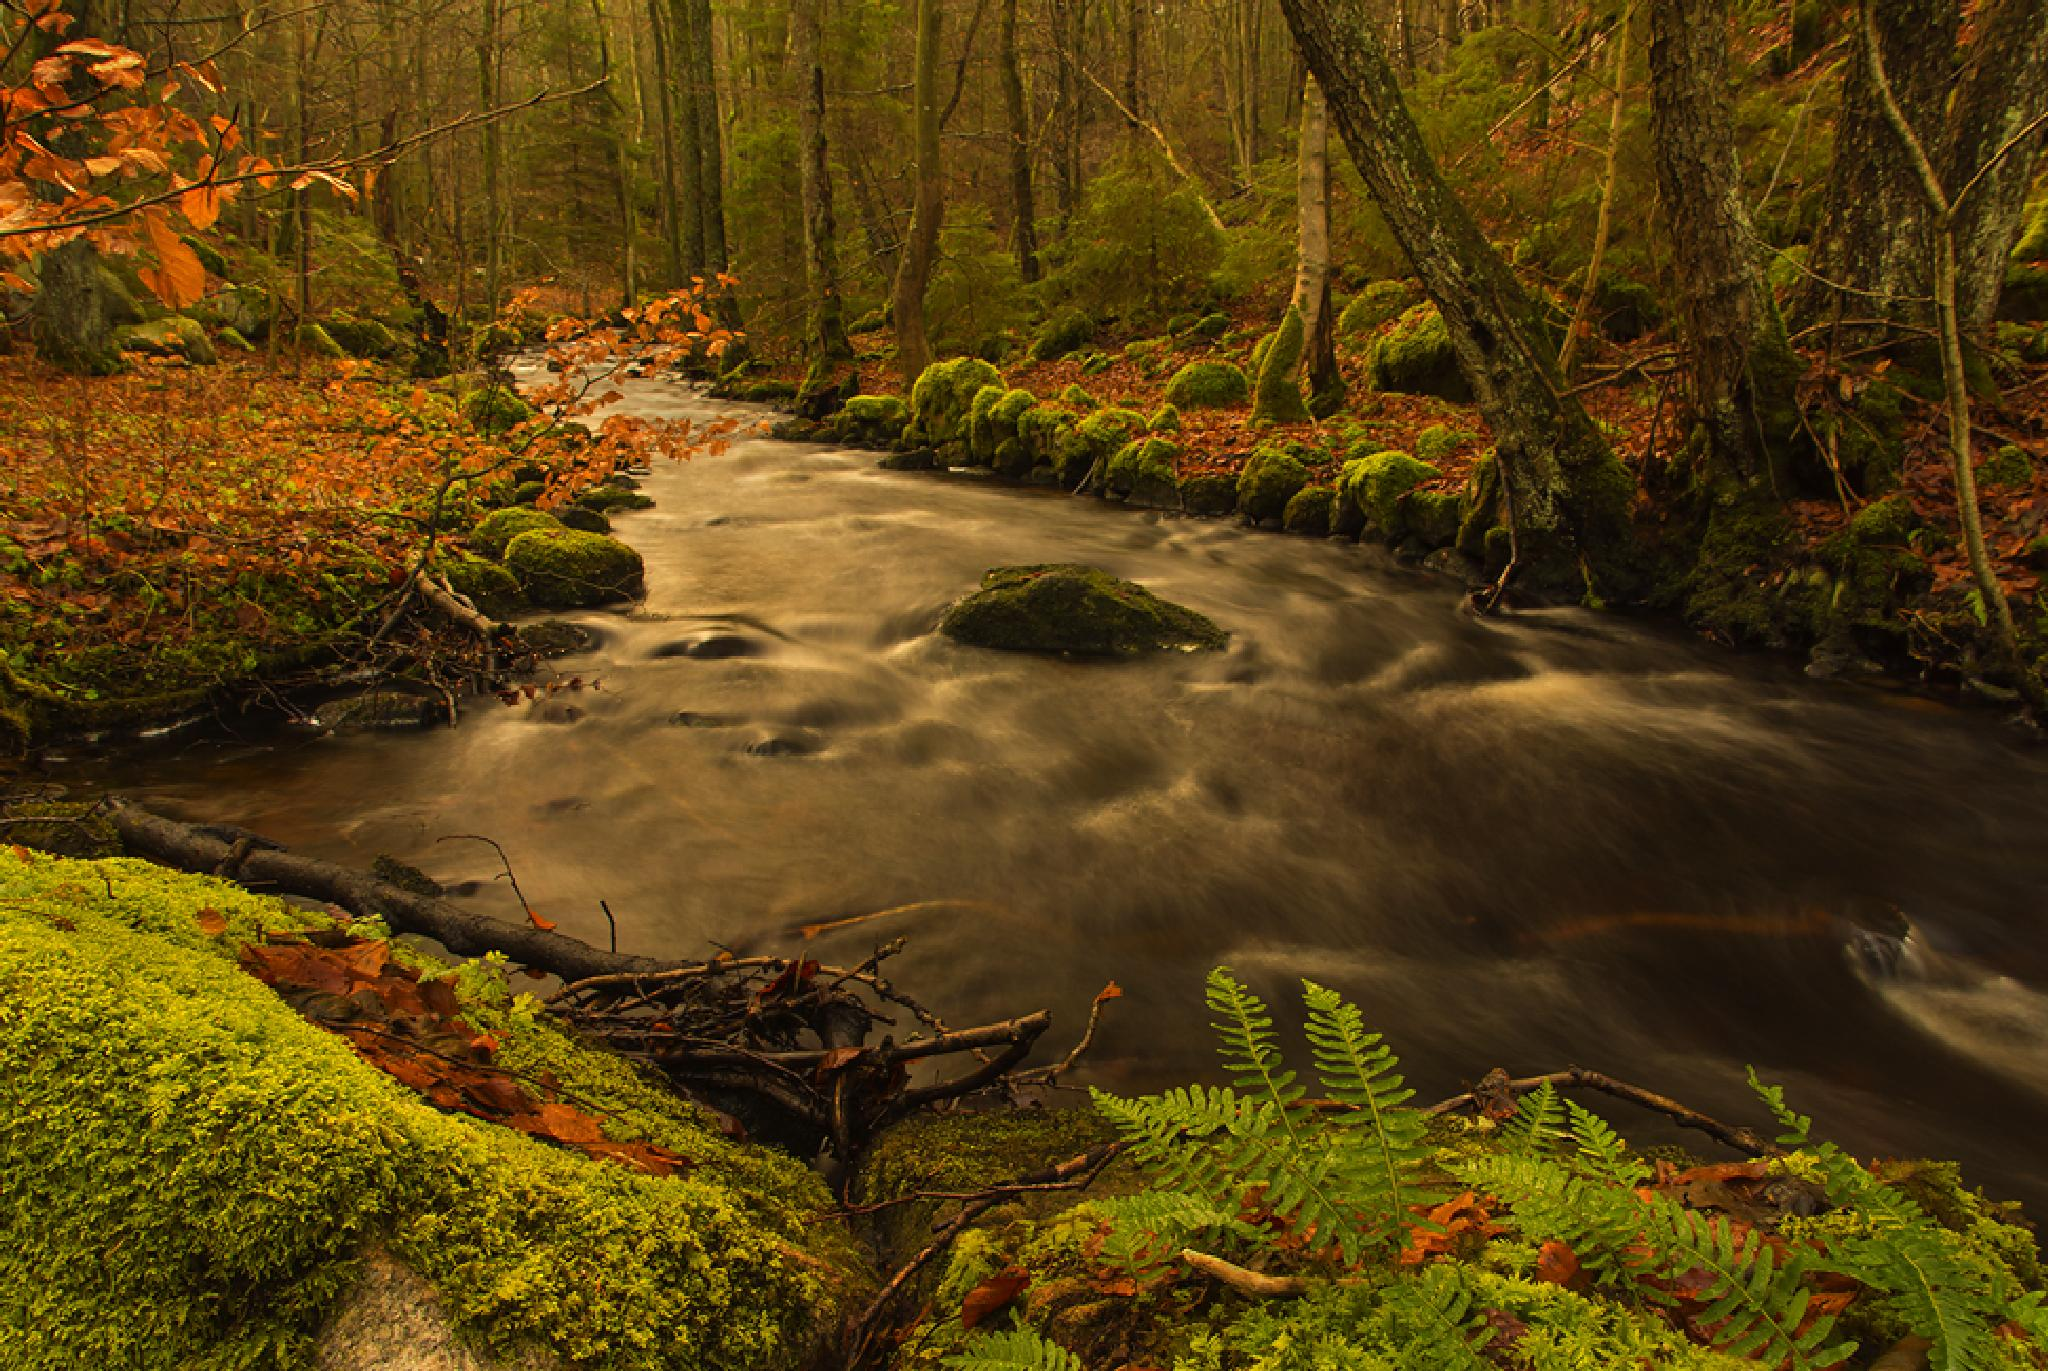 The creek by Peter Samuelsson